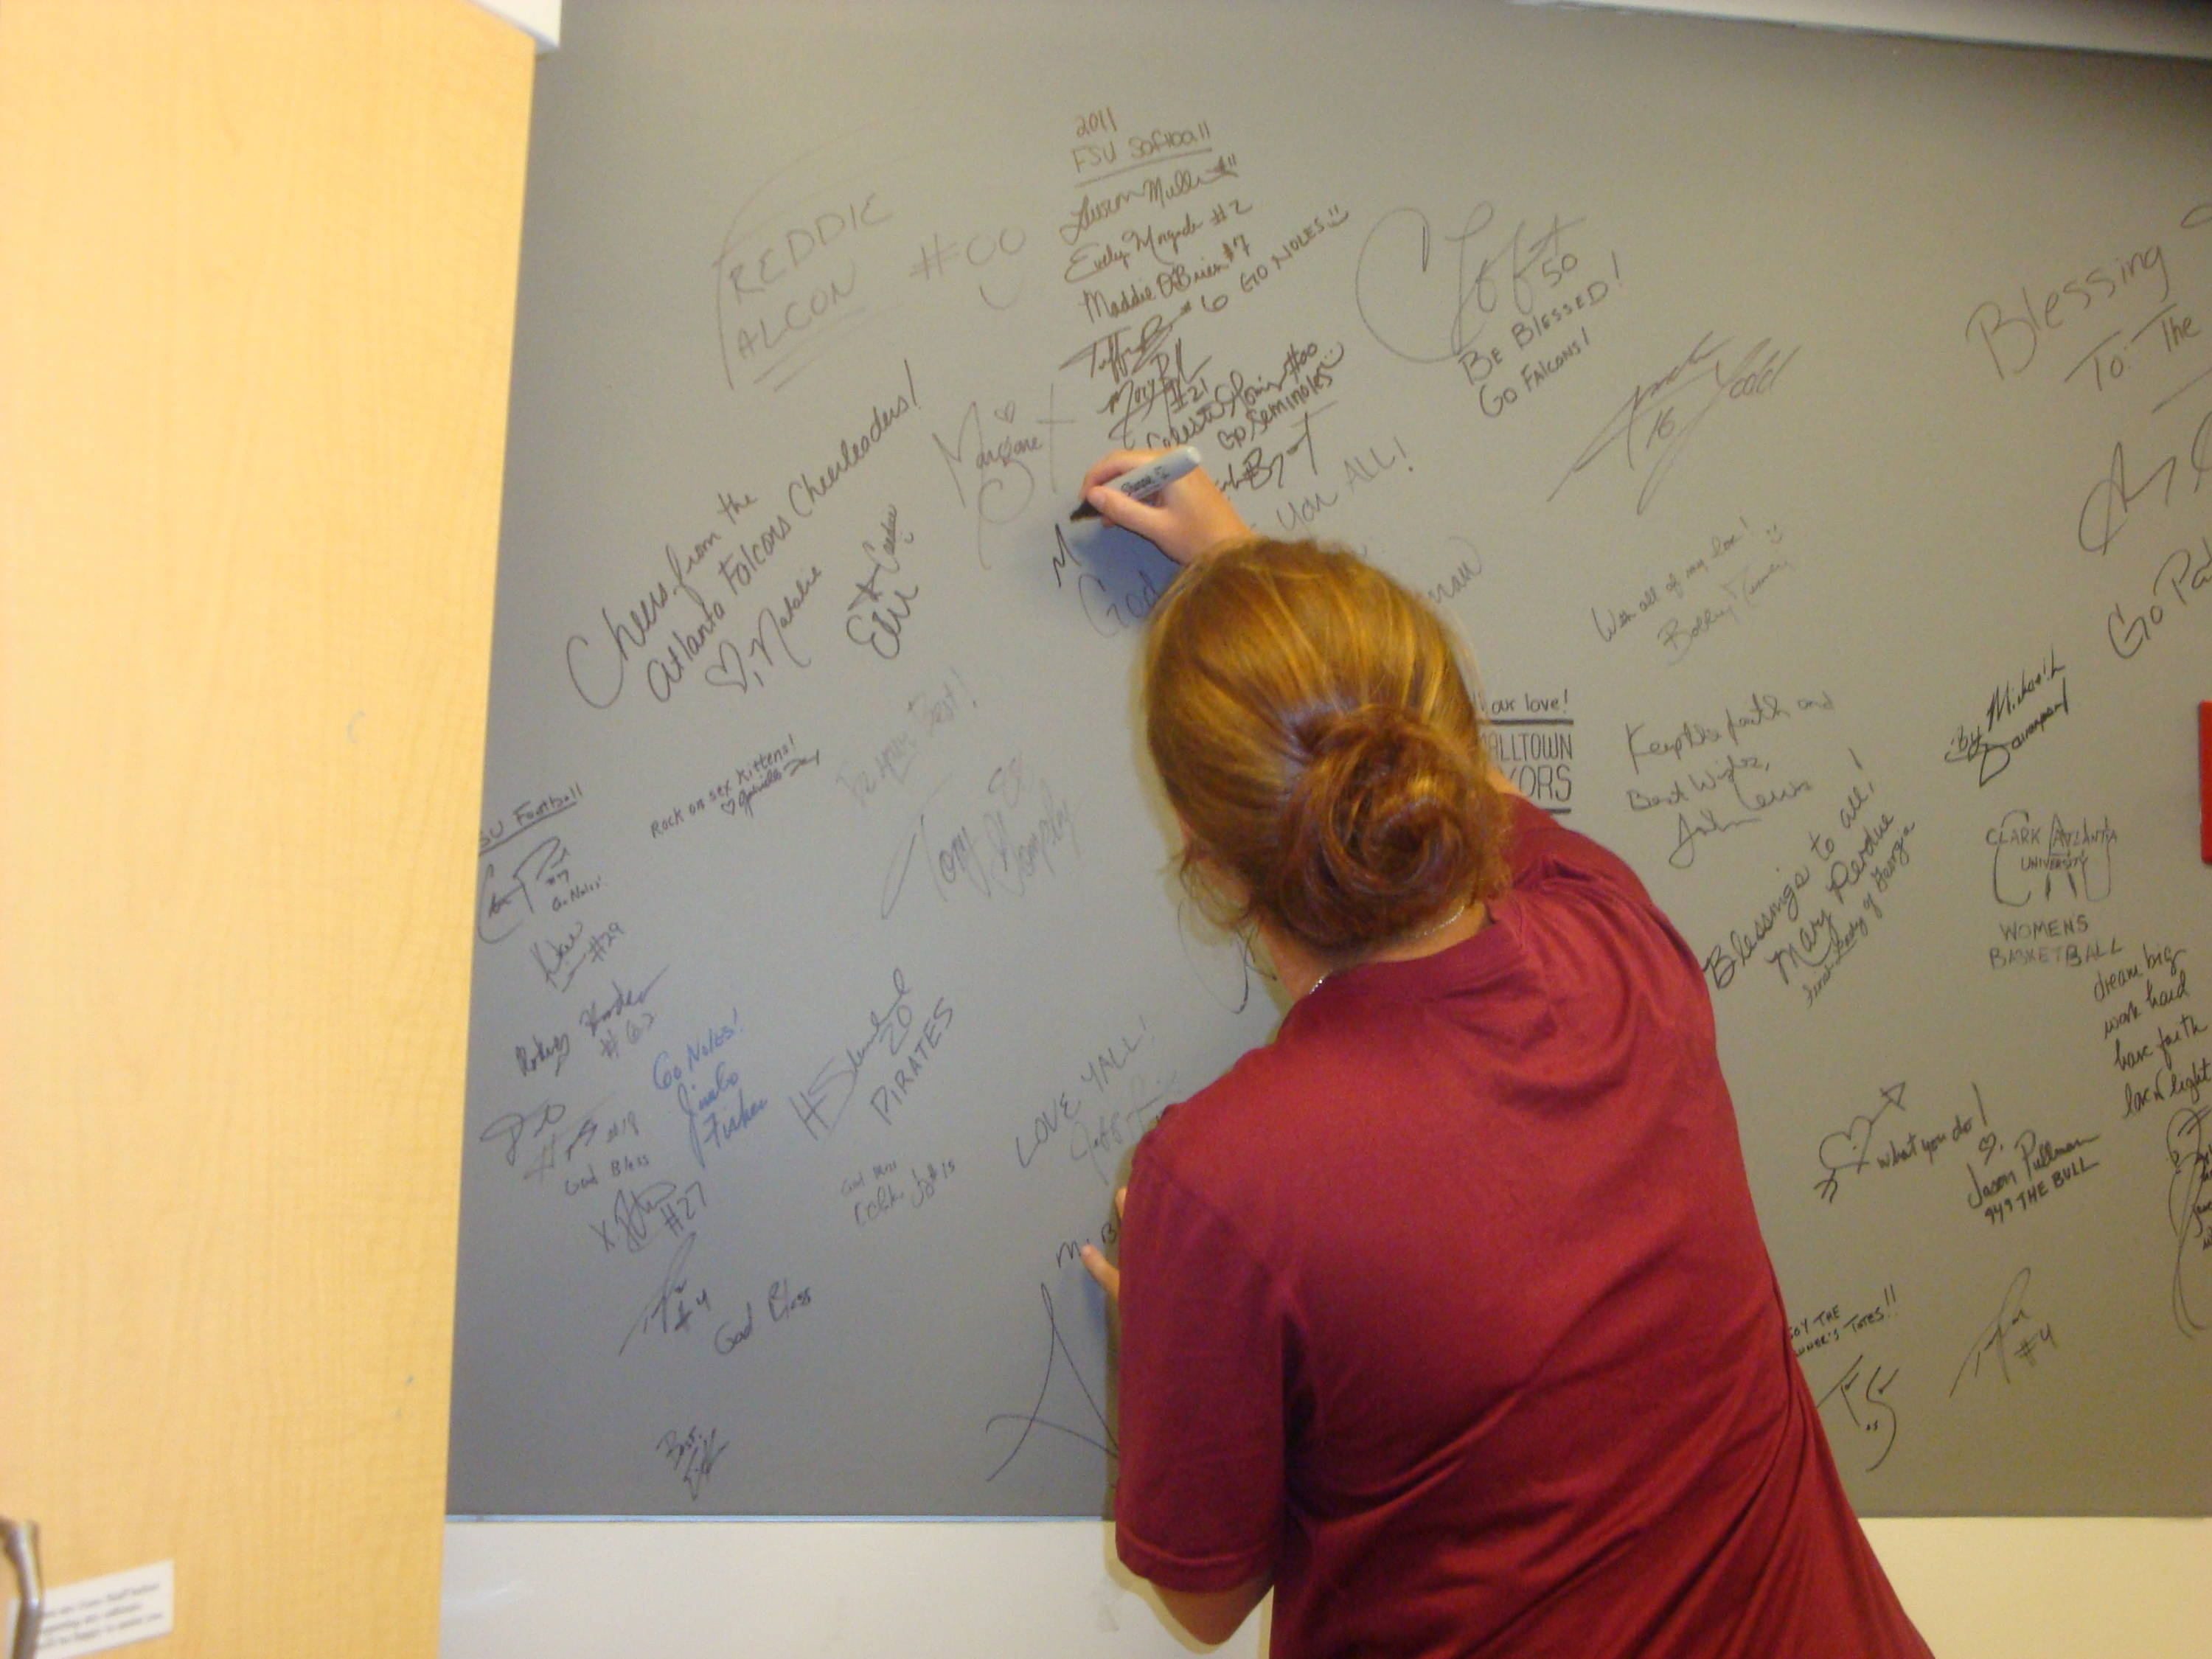 Mallory Borden adds her name to the signature wall